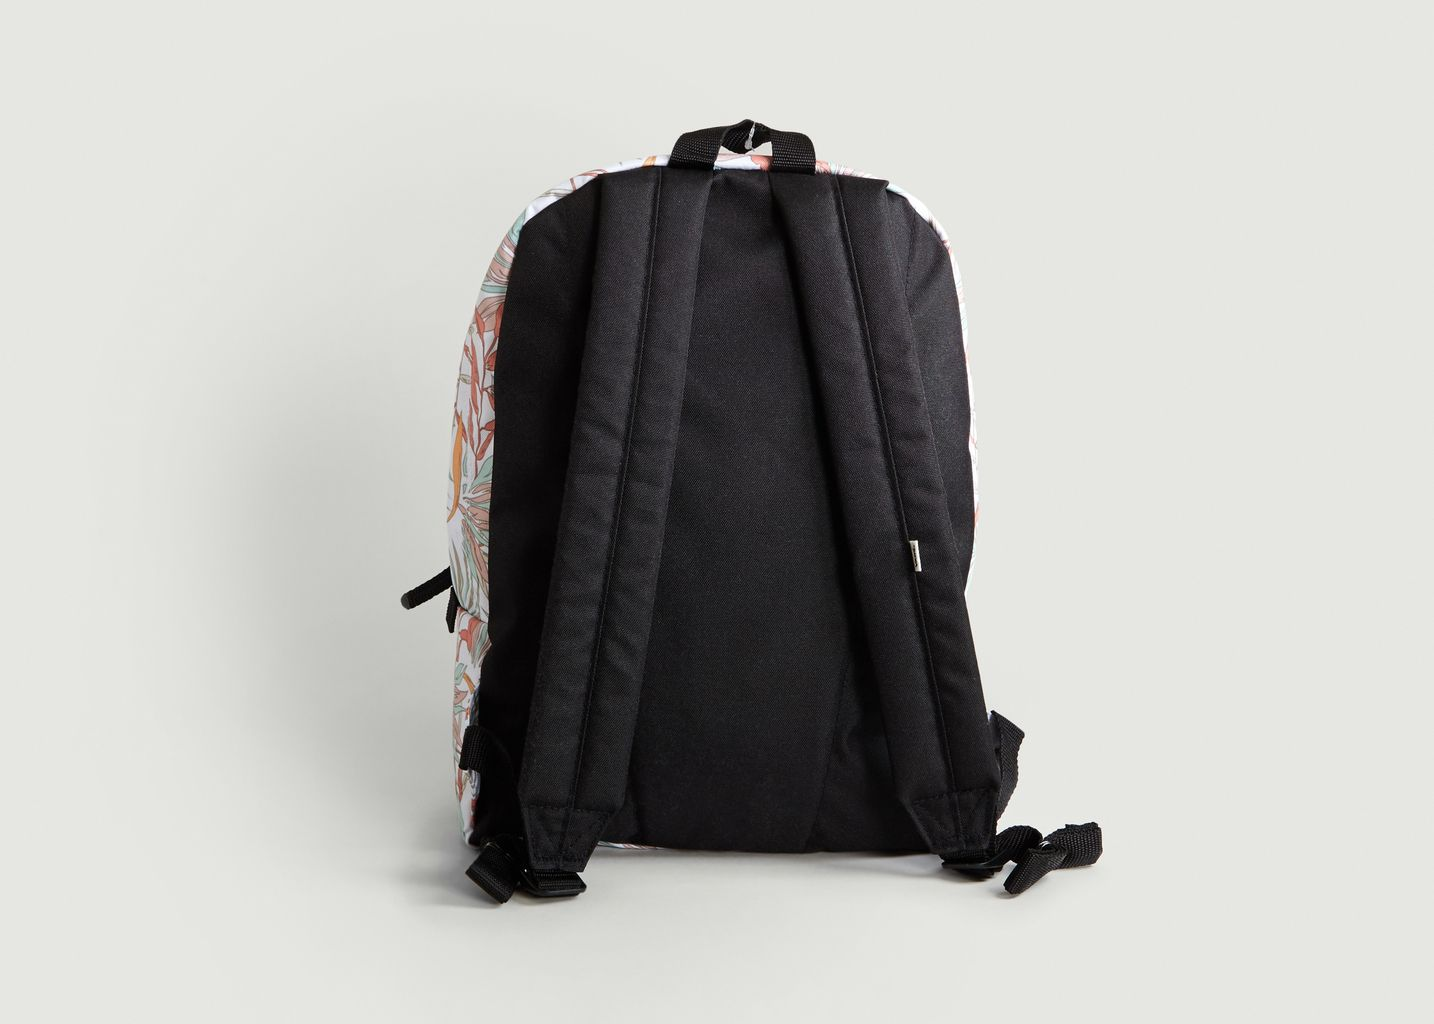 8cc7bbe82636 Realm Backpack Multicolor Vans